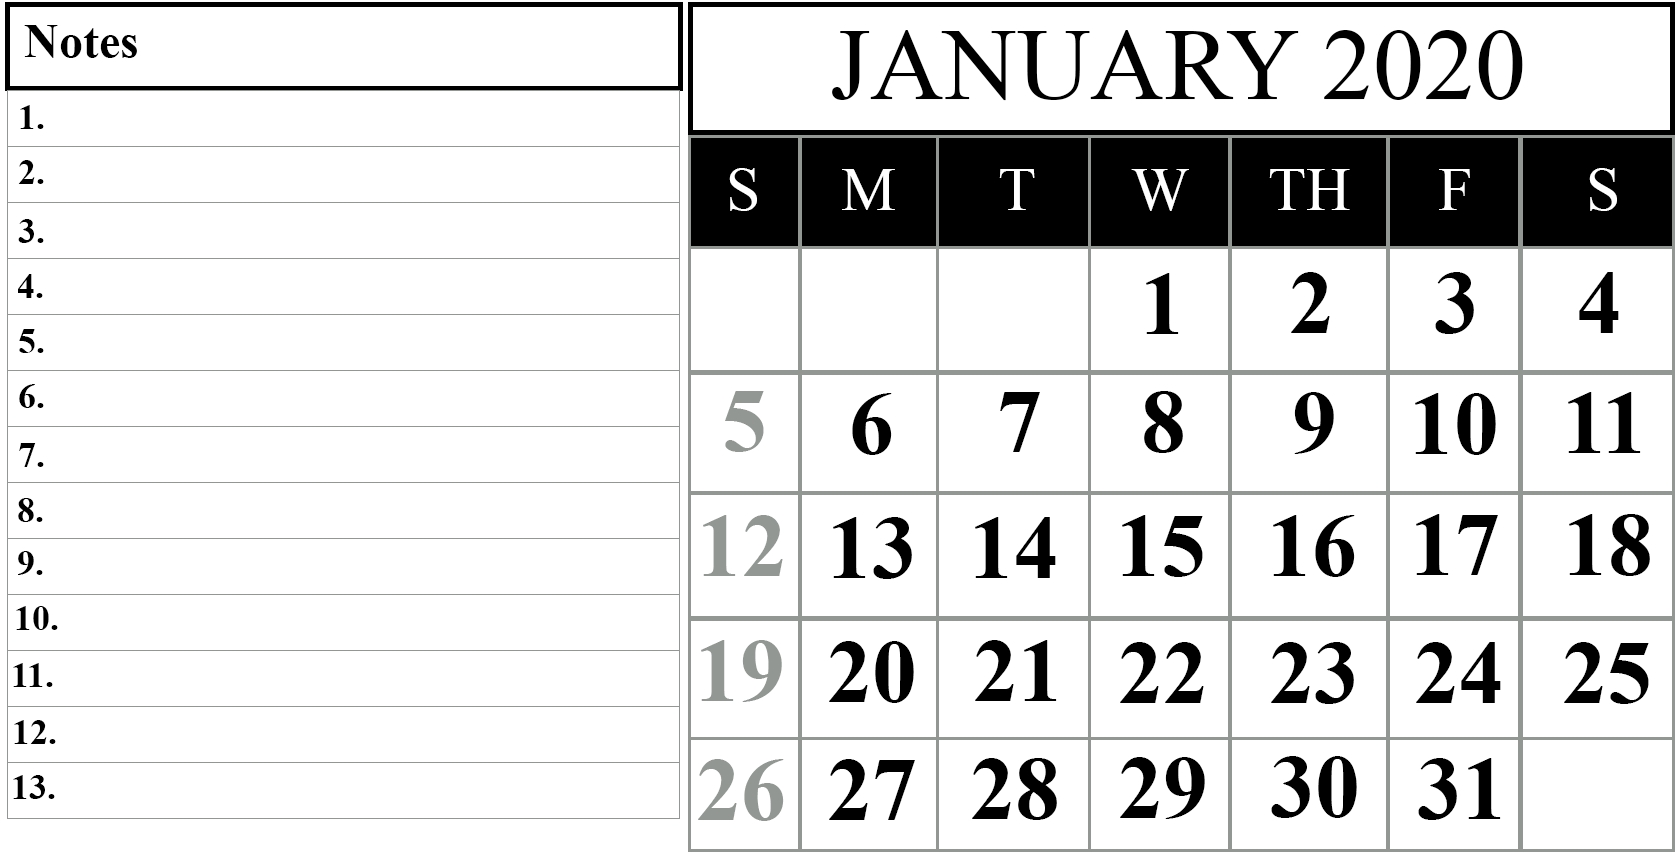 January 2020 Printable Calendar Template #2020Calendars  Blank Calendar Fill In 2020 Printable